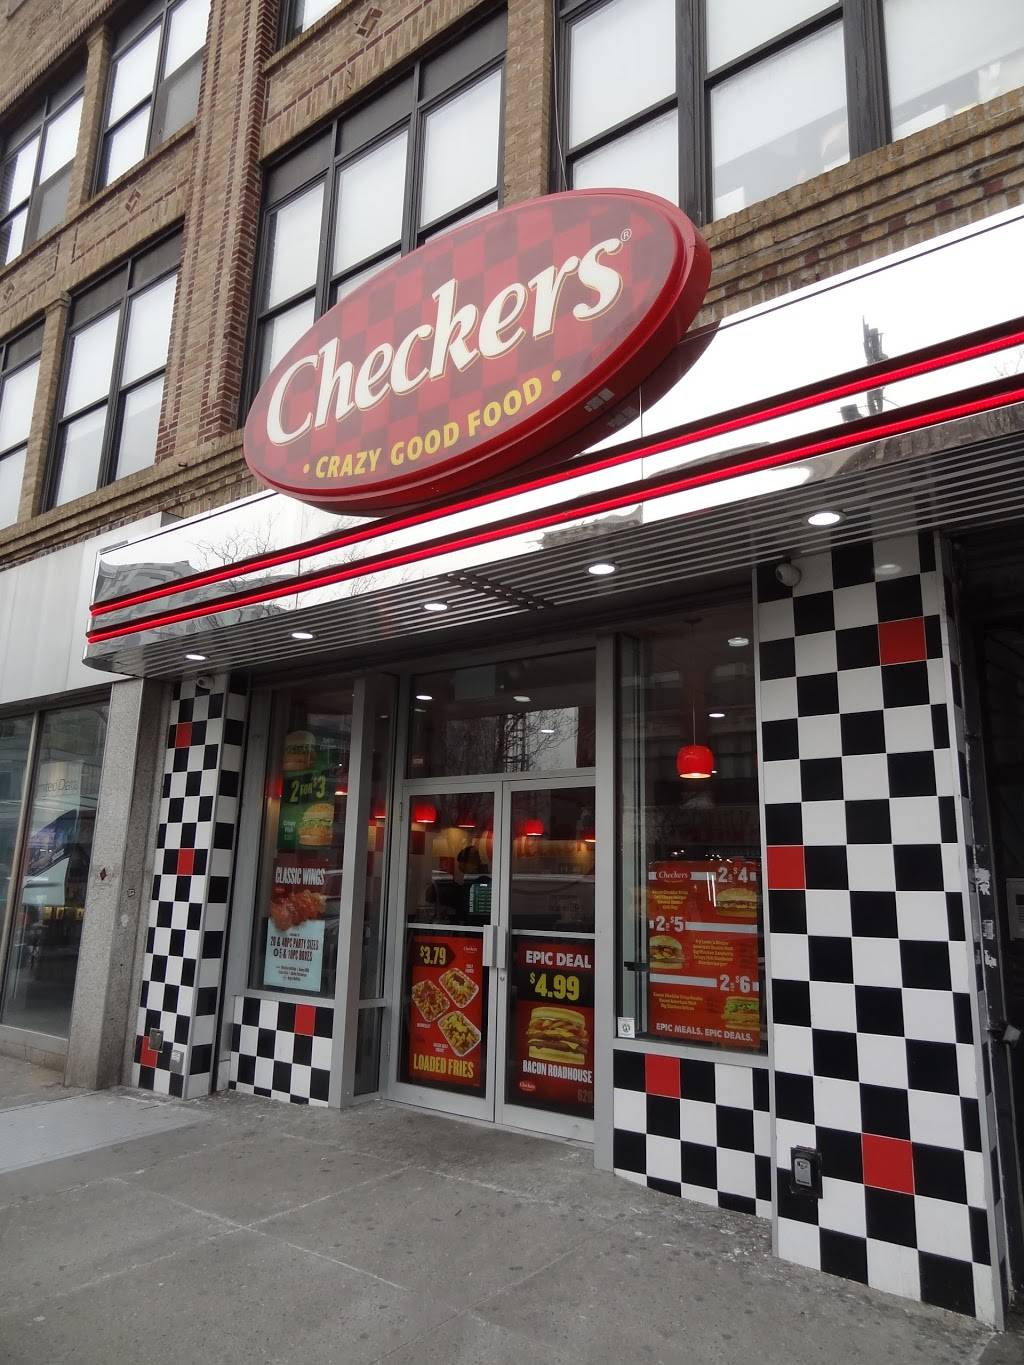 Checkers | restaurant | 79 W 125th St, New York, NY 10027, USA | 2128371500 OR +1 212-837-1500